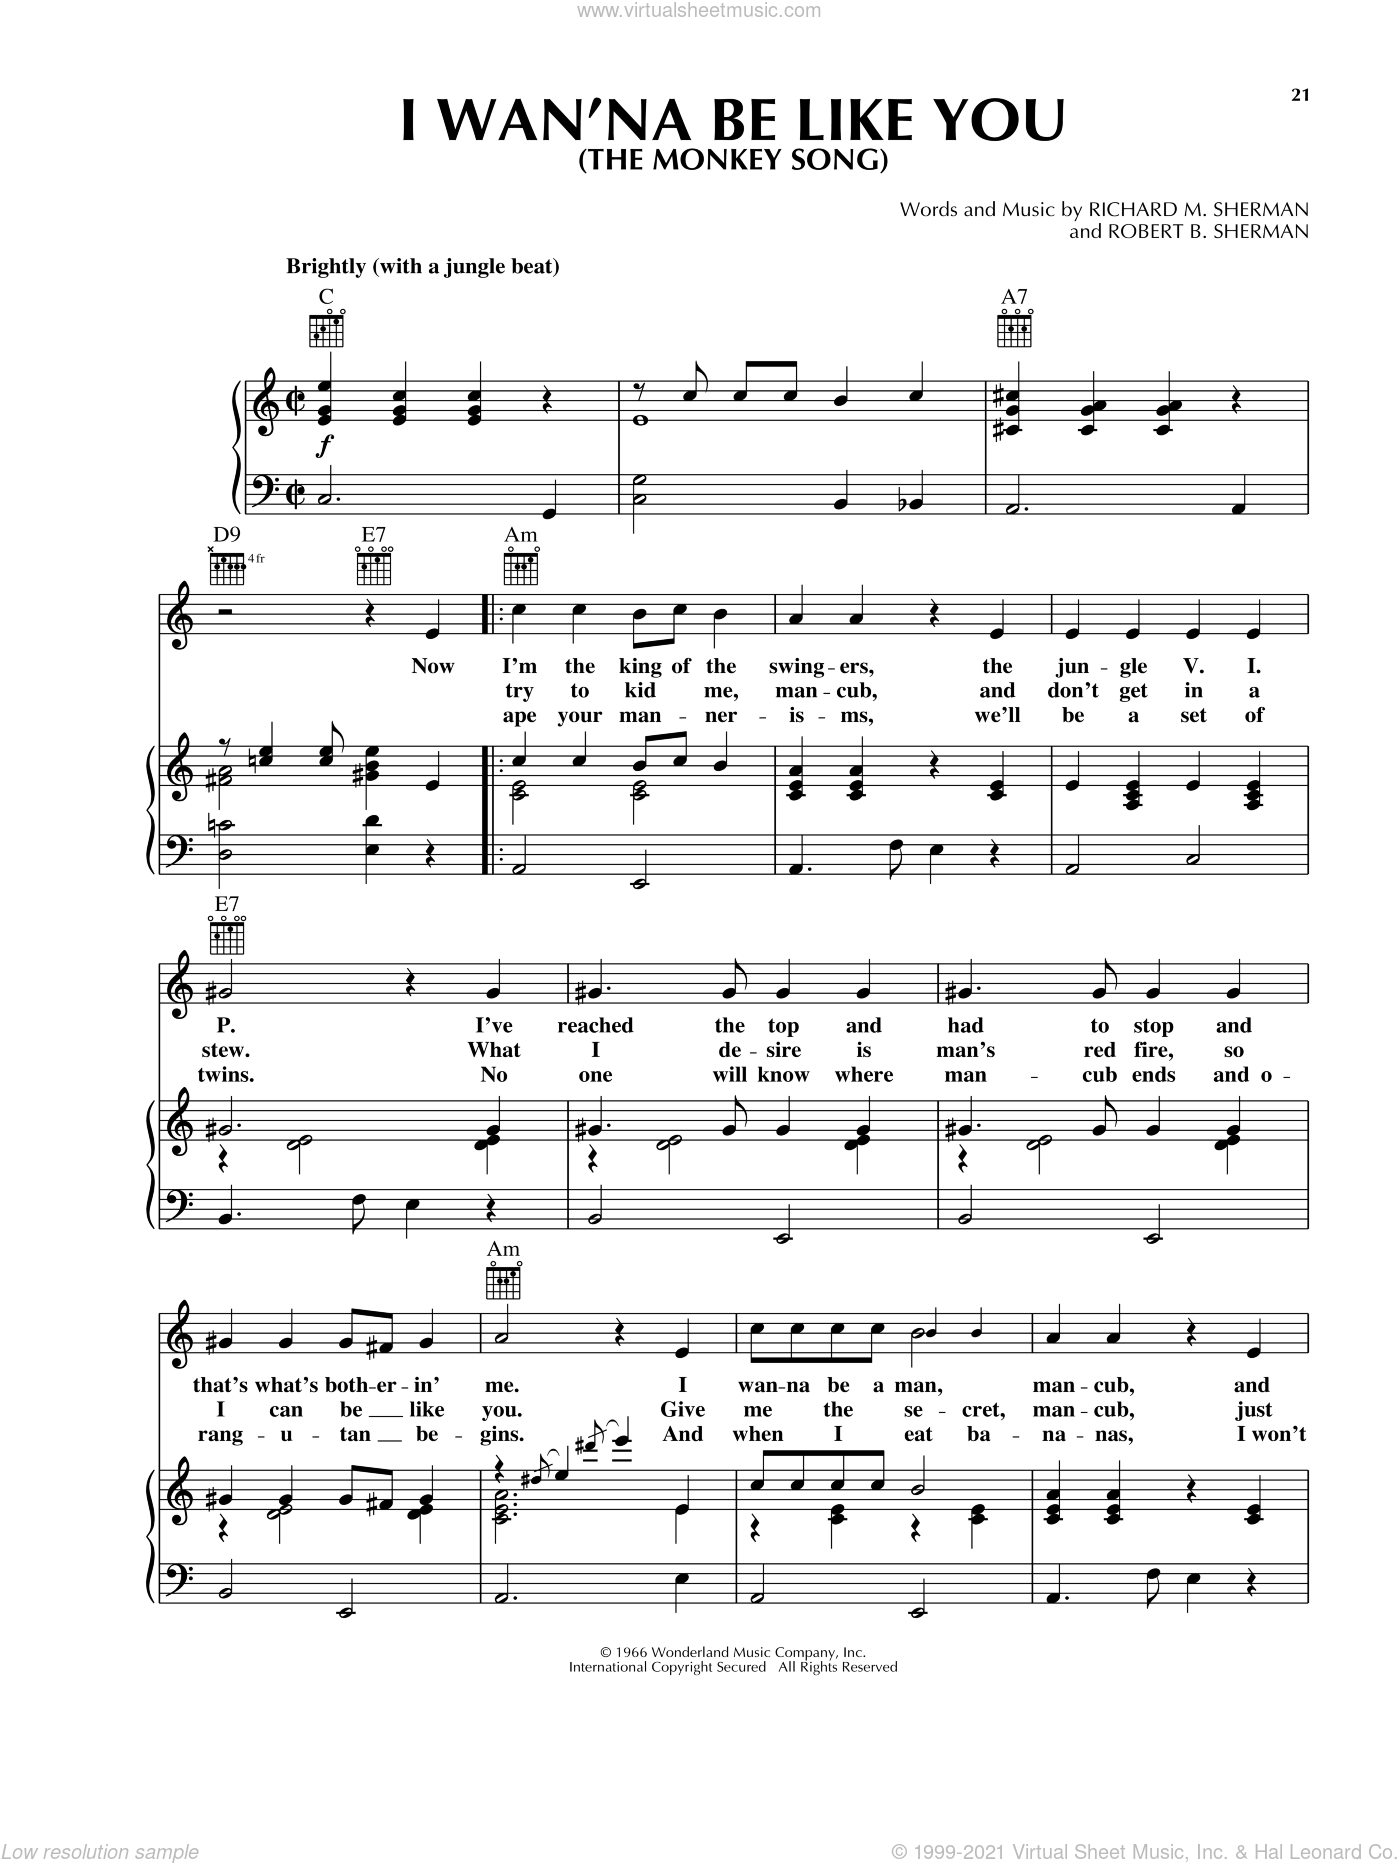 I Wan'na Be Like You (The Monkey Song) sheet music for voice, piano or guitar by Robert B. Sherman and Richard M. Sherman. Score Image Preview.